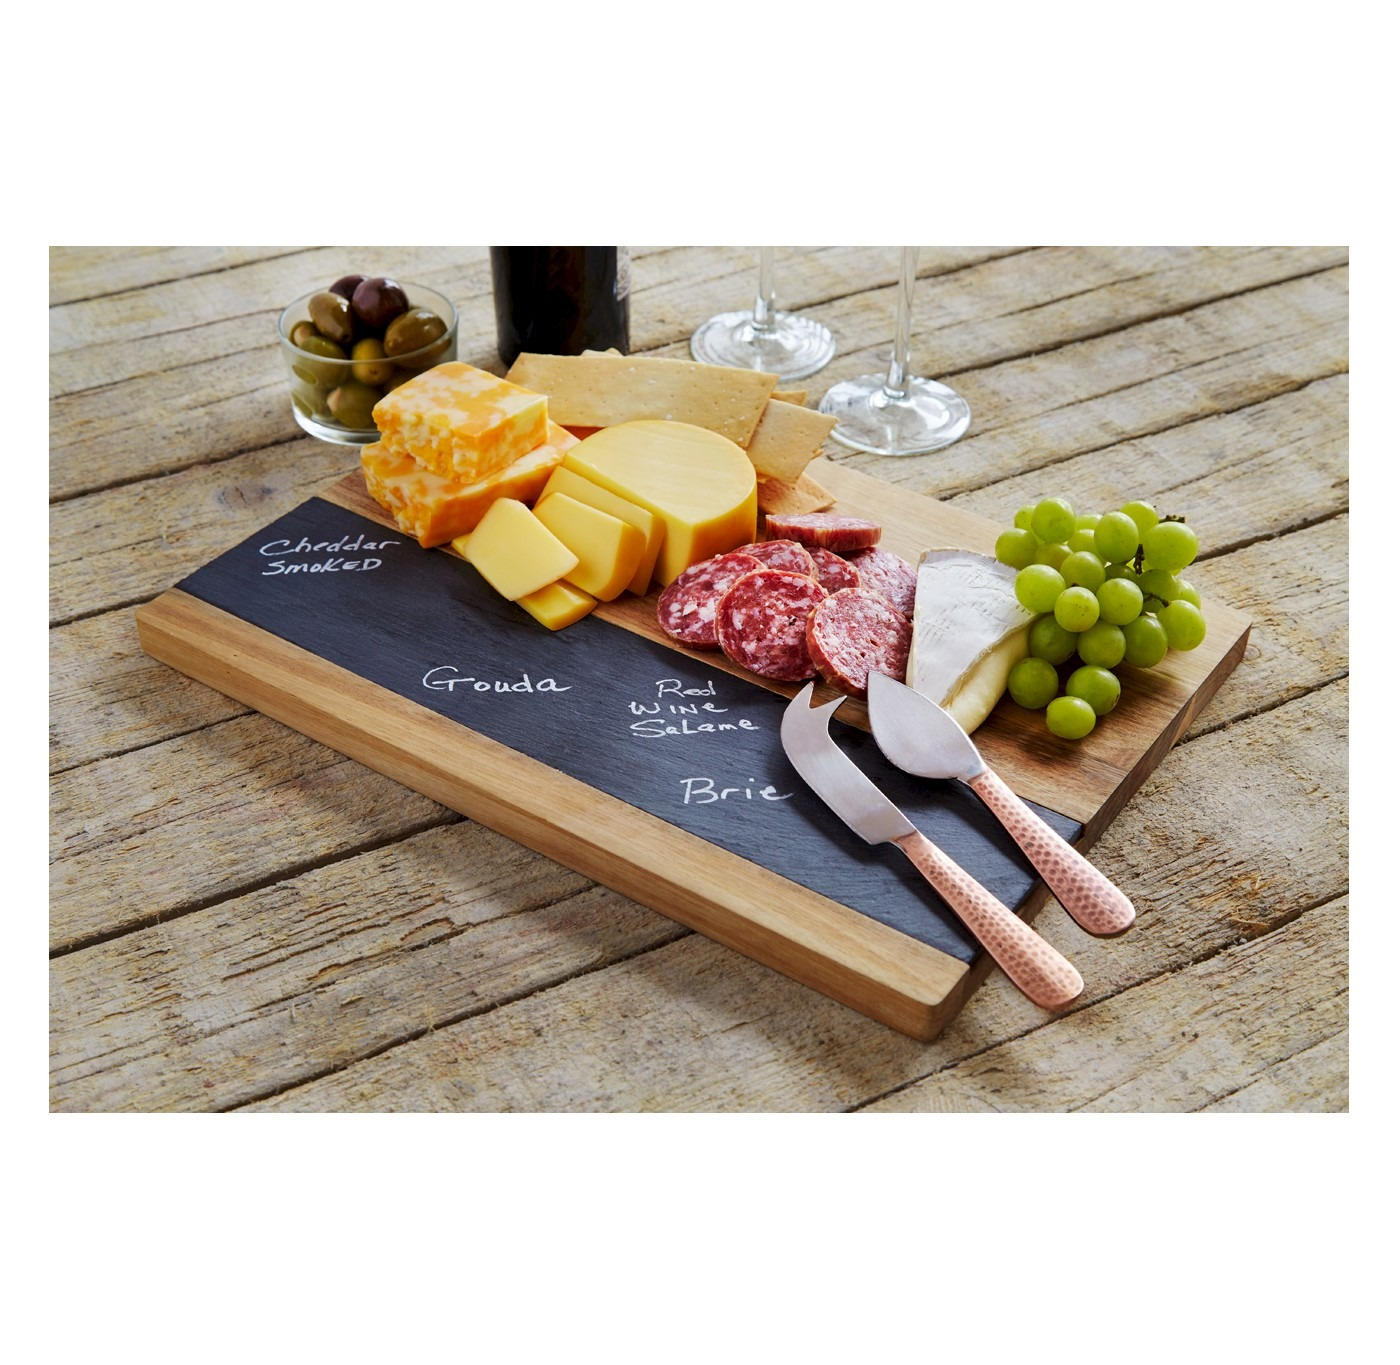 New in the box - Refinery Cheese Board Wood with 2